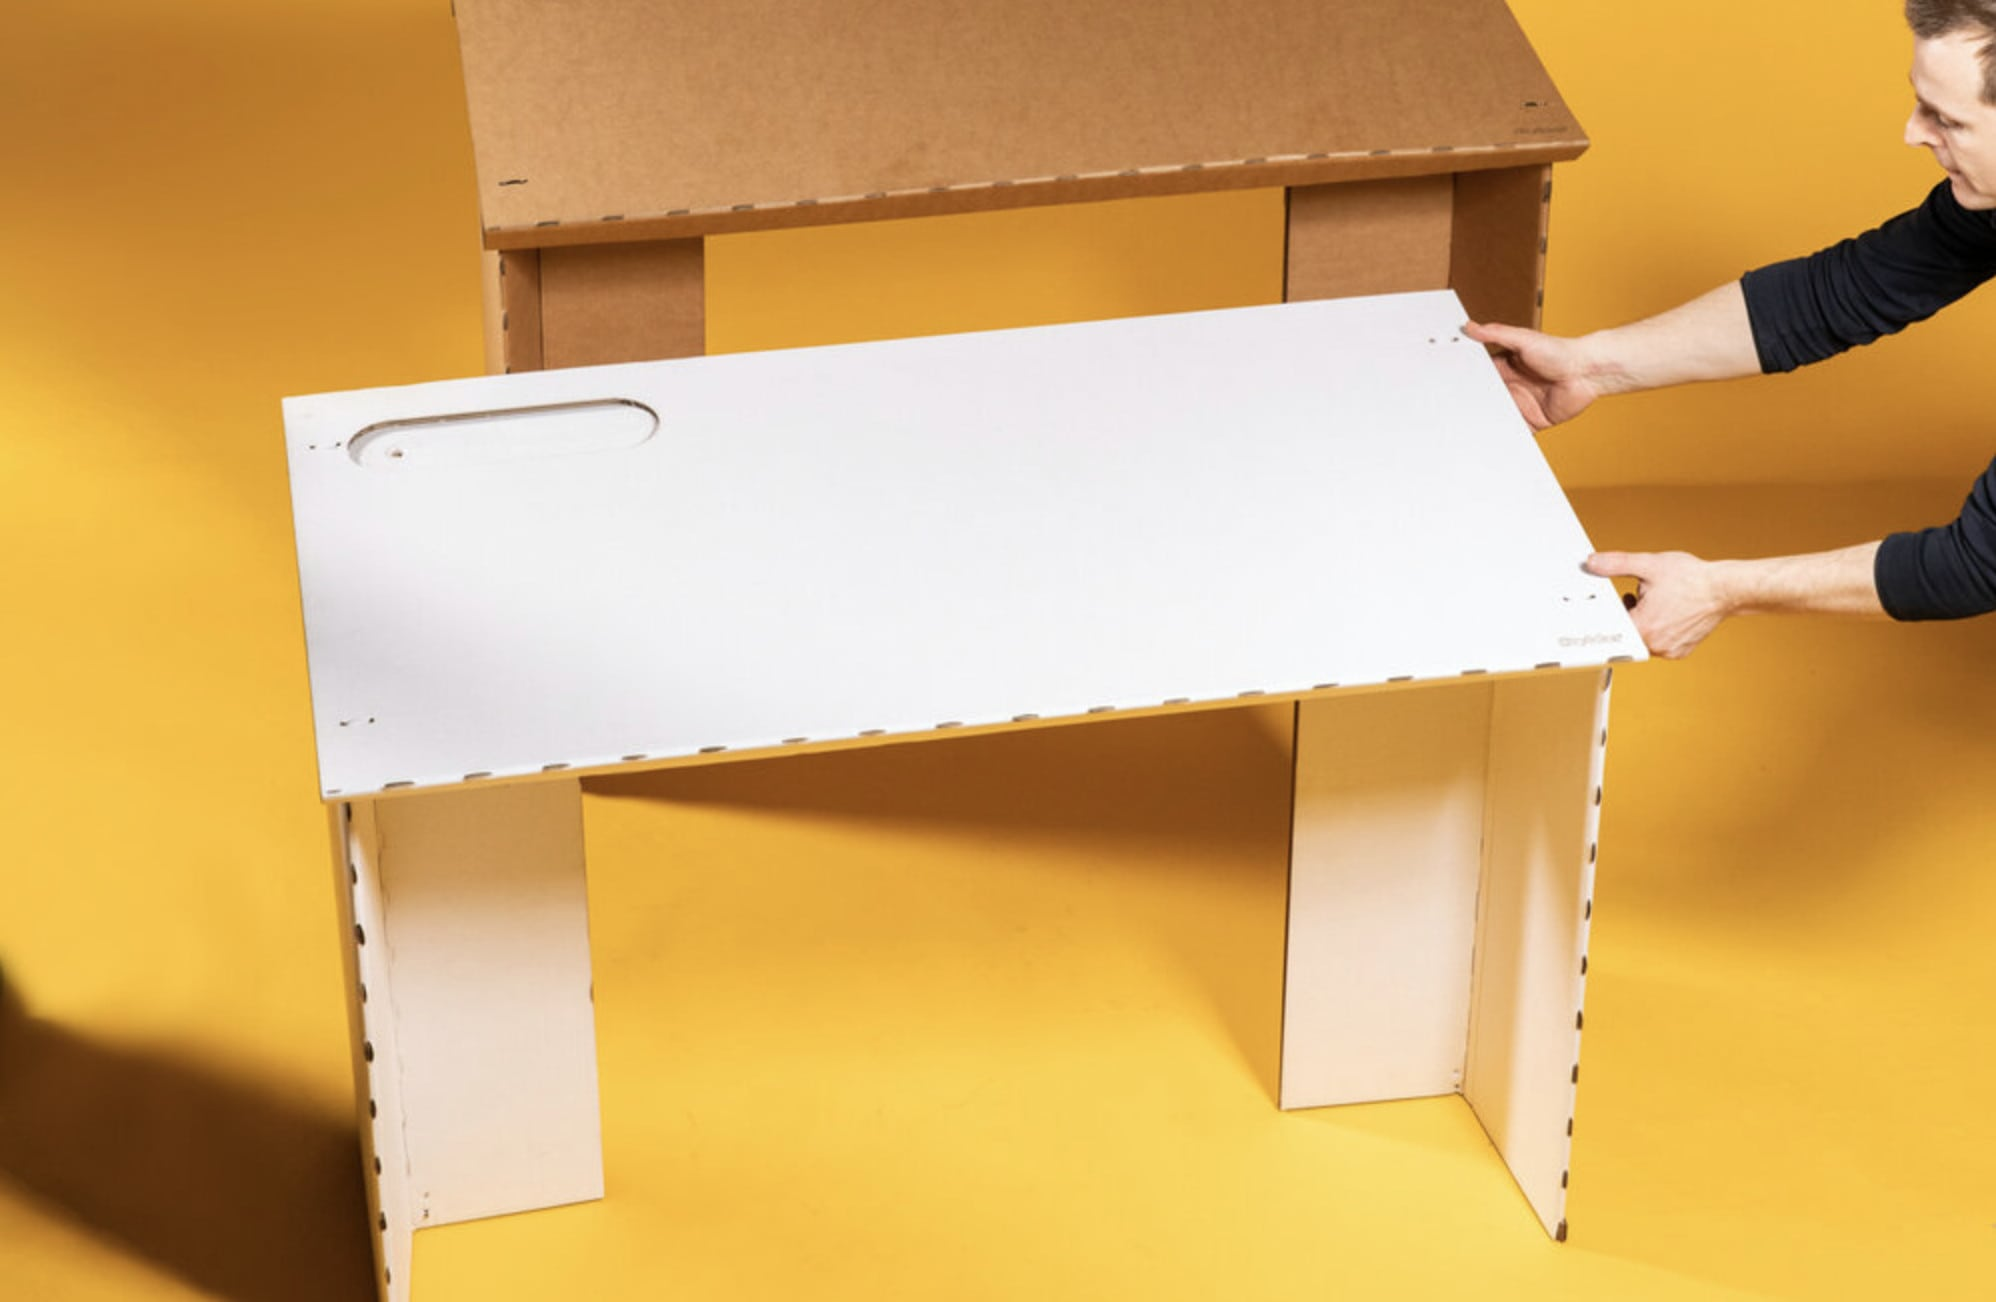 Every list of work-from-home essentials should include a desk. The Stykka desk is made almost entirely from cardboard.